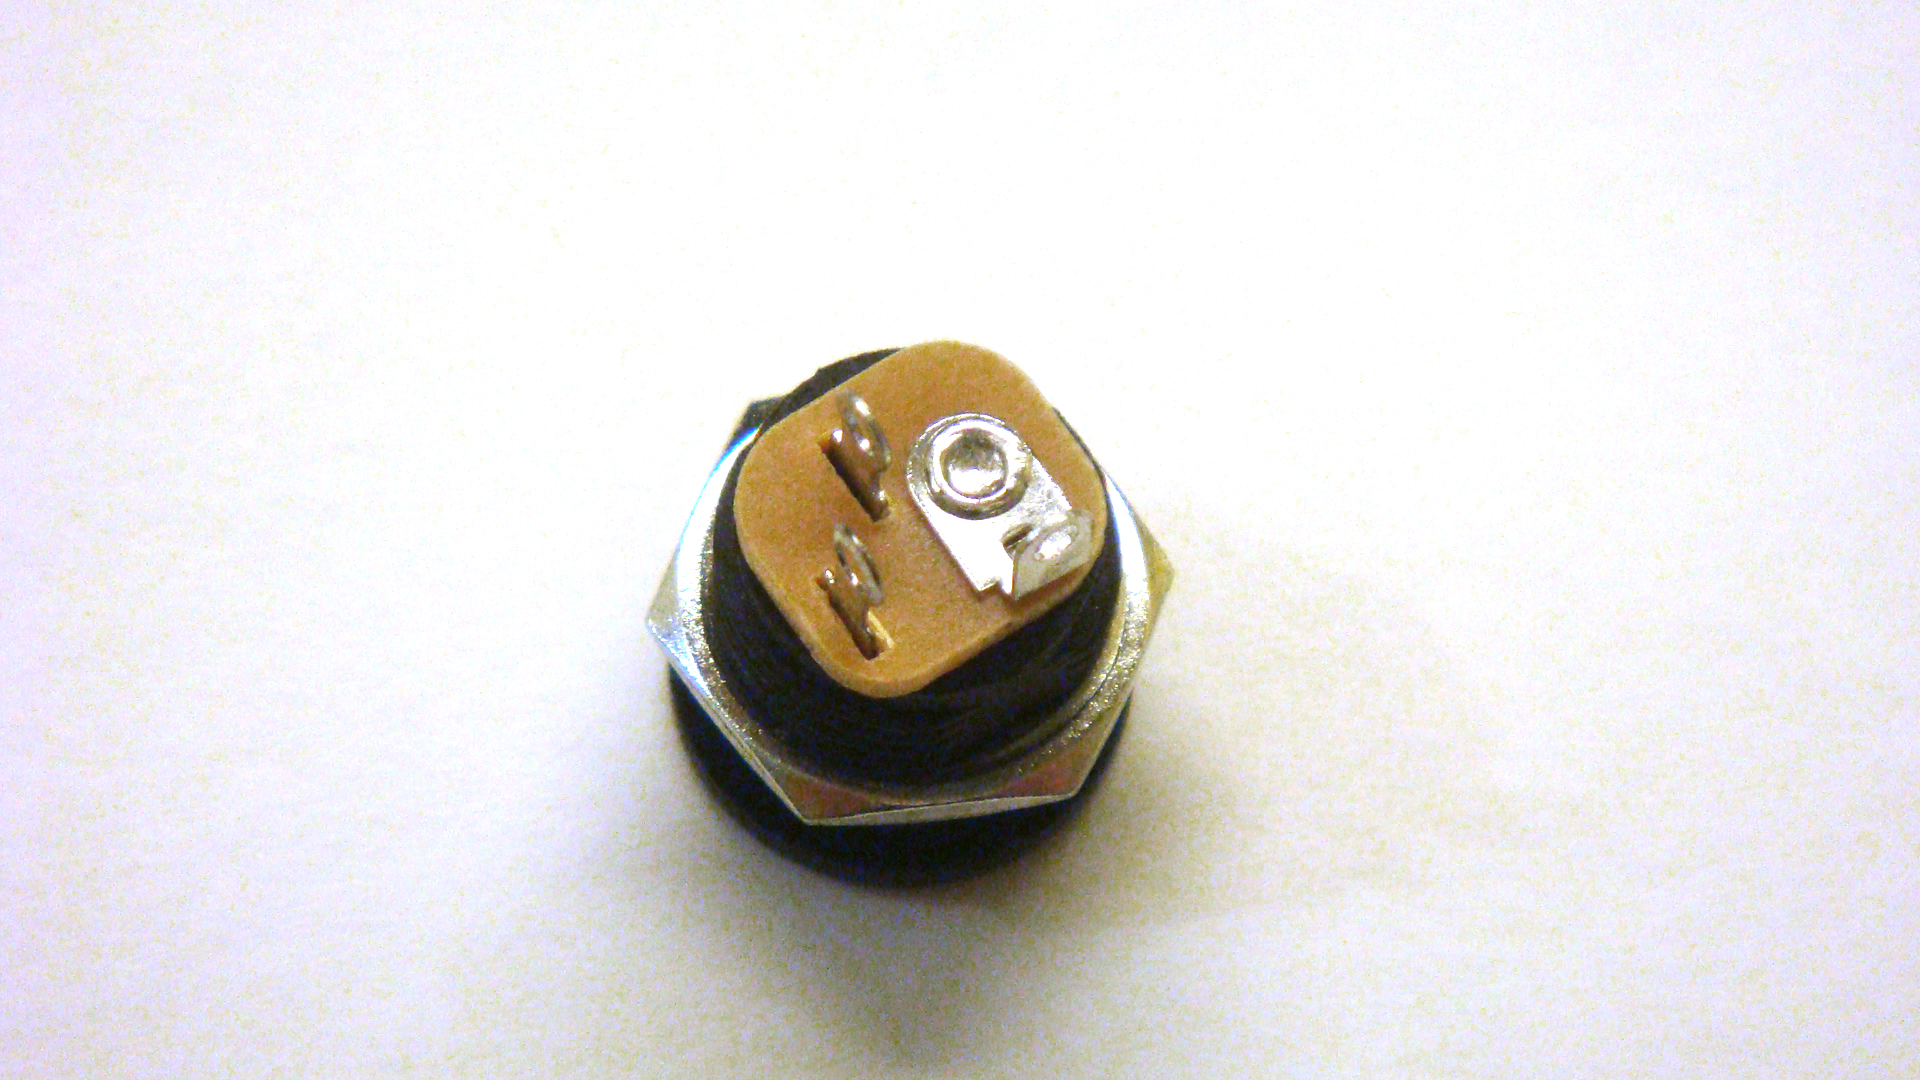 DIY Center Negative Power Supply - DIY Audio Circuits on dc jack repair, dc power jack pinout, dc power jack connectors, dc power jack schematic, dc wiring cacle, dc wiring color, dc jack parts, dc home wiring,